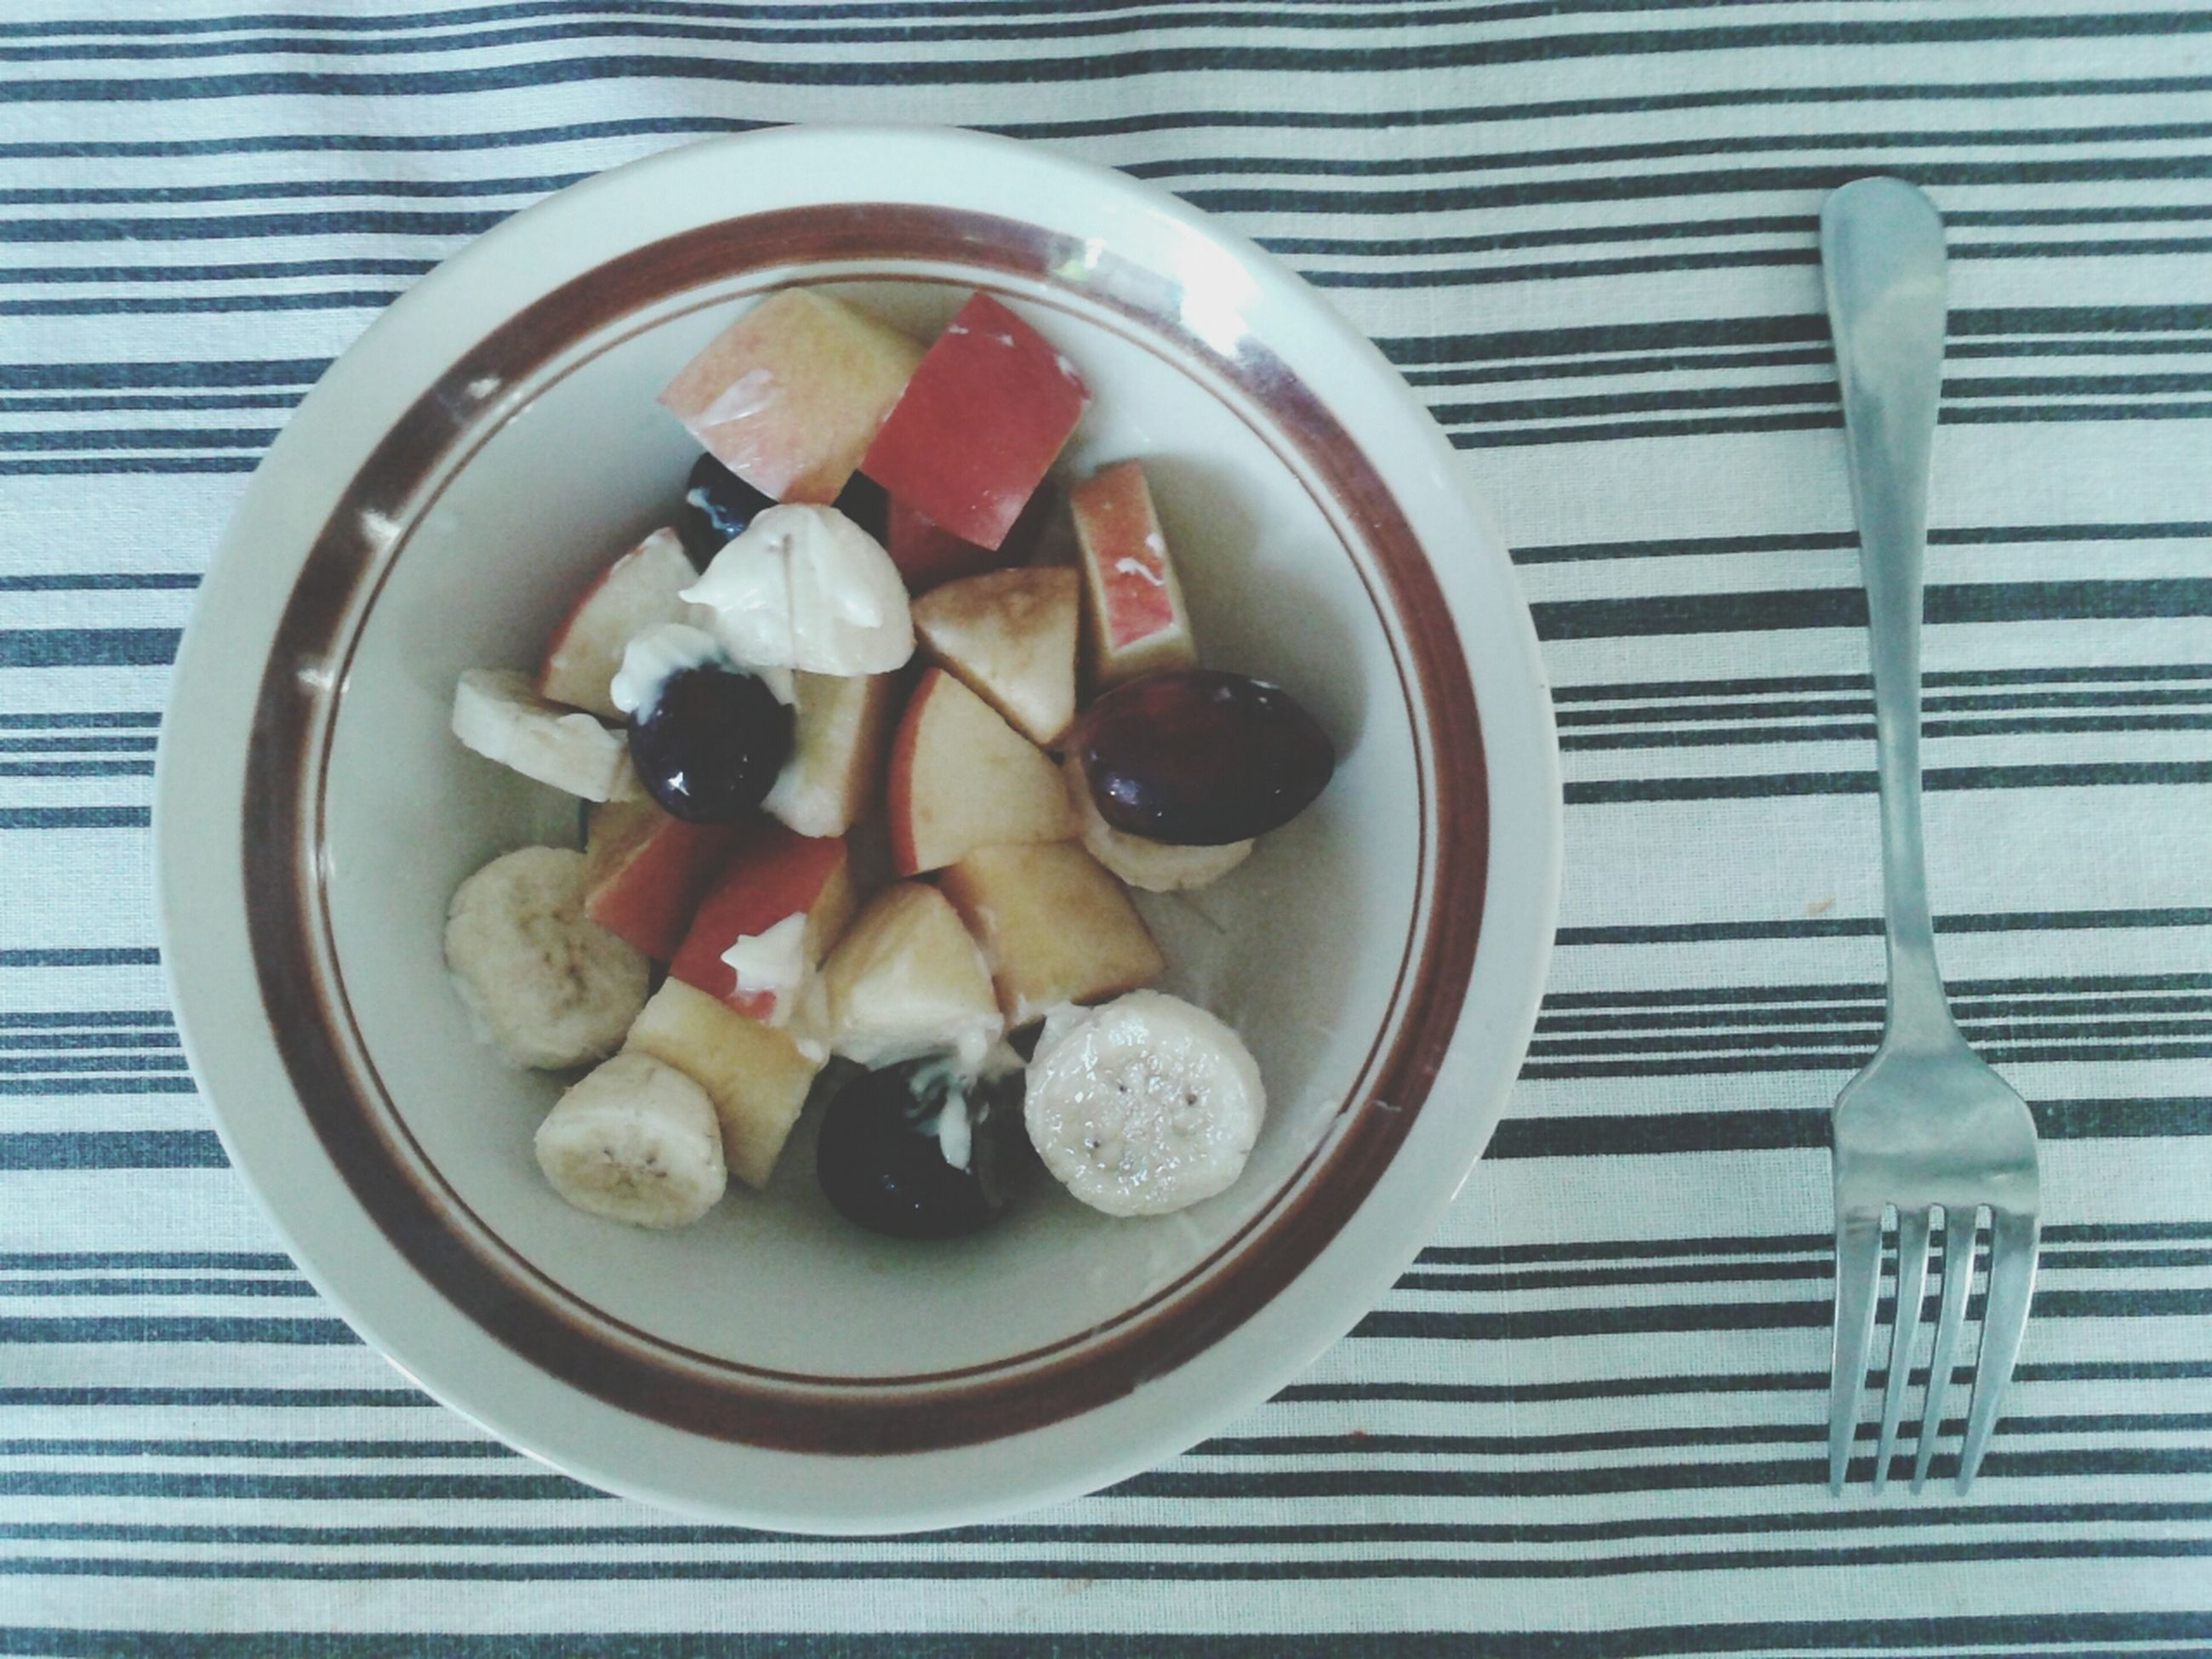 food and drink, food, freshness, plate, indoors, healthy eating, bowl, ready-to-eat, still life, high angle view, table, serving size, fruit, indulgence, close-up, directly above, spoon, served, no people, sweet food